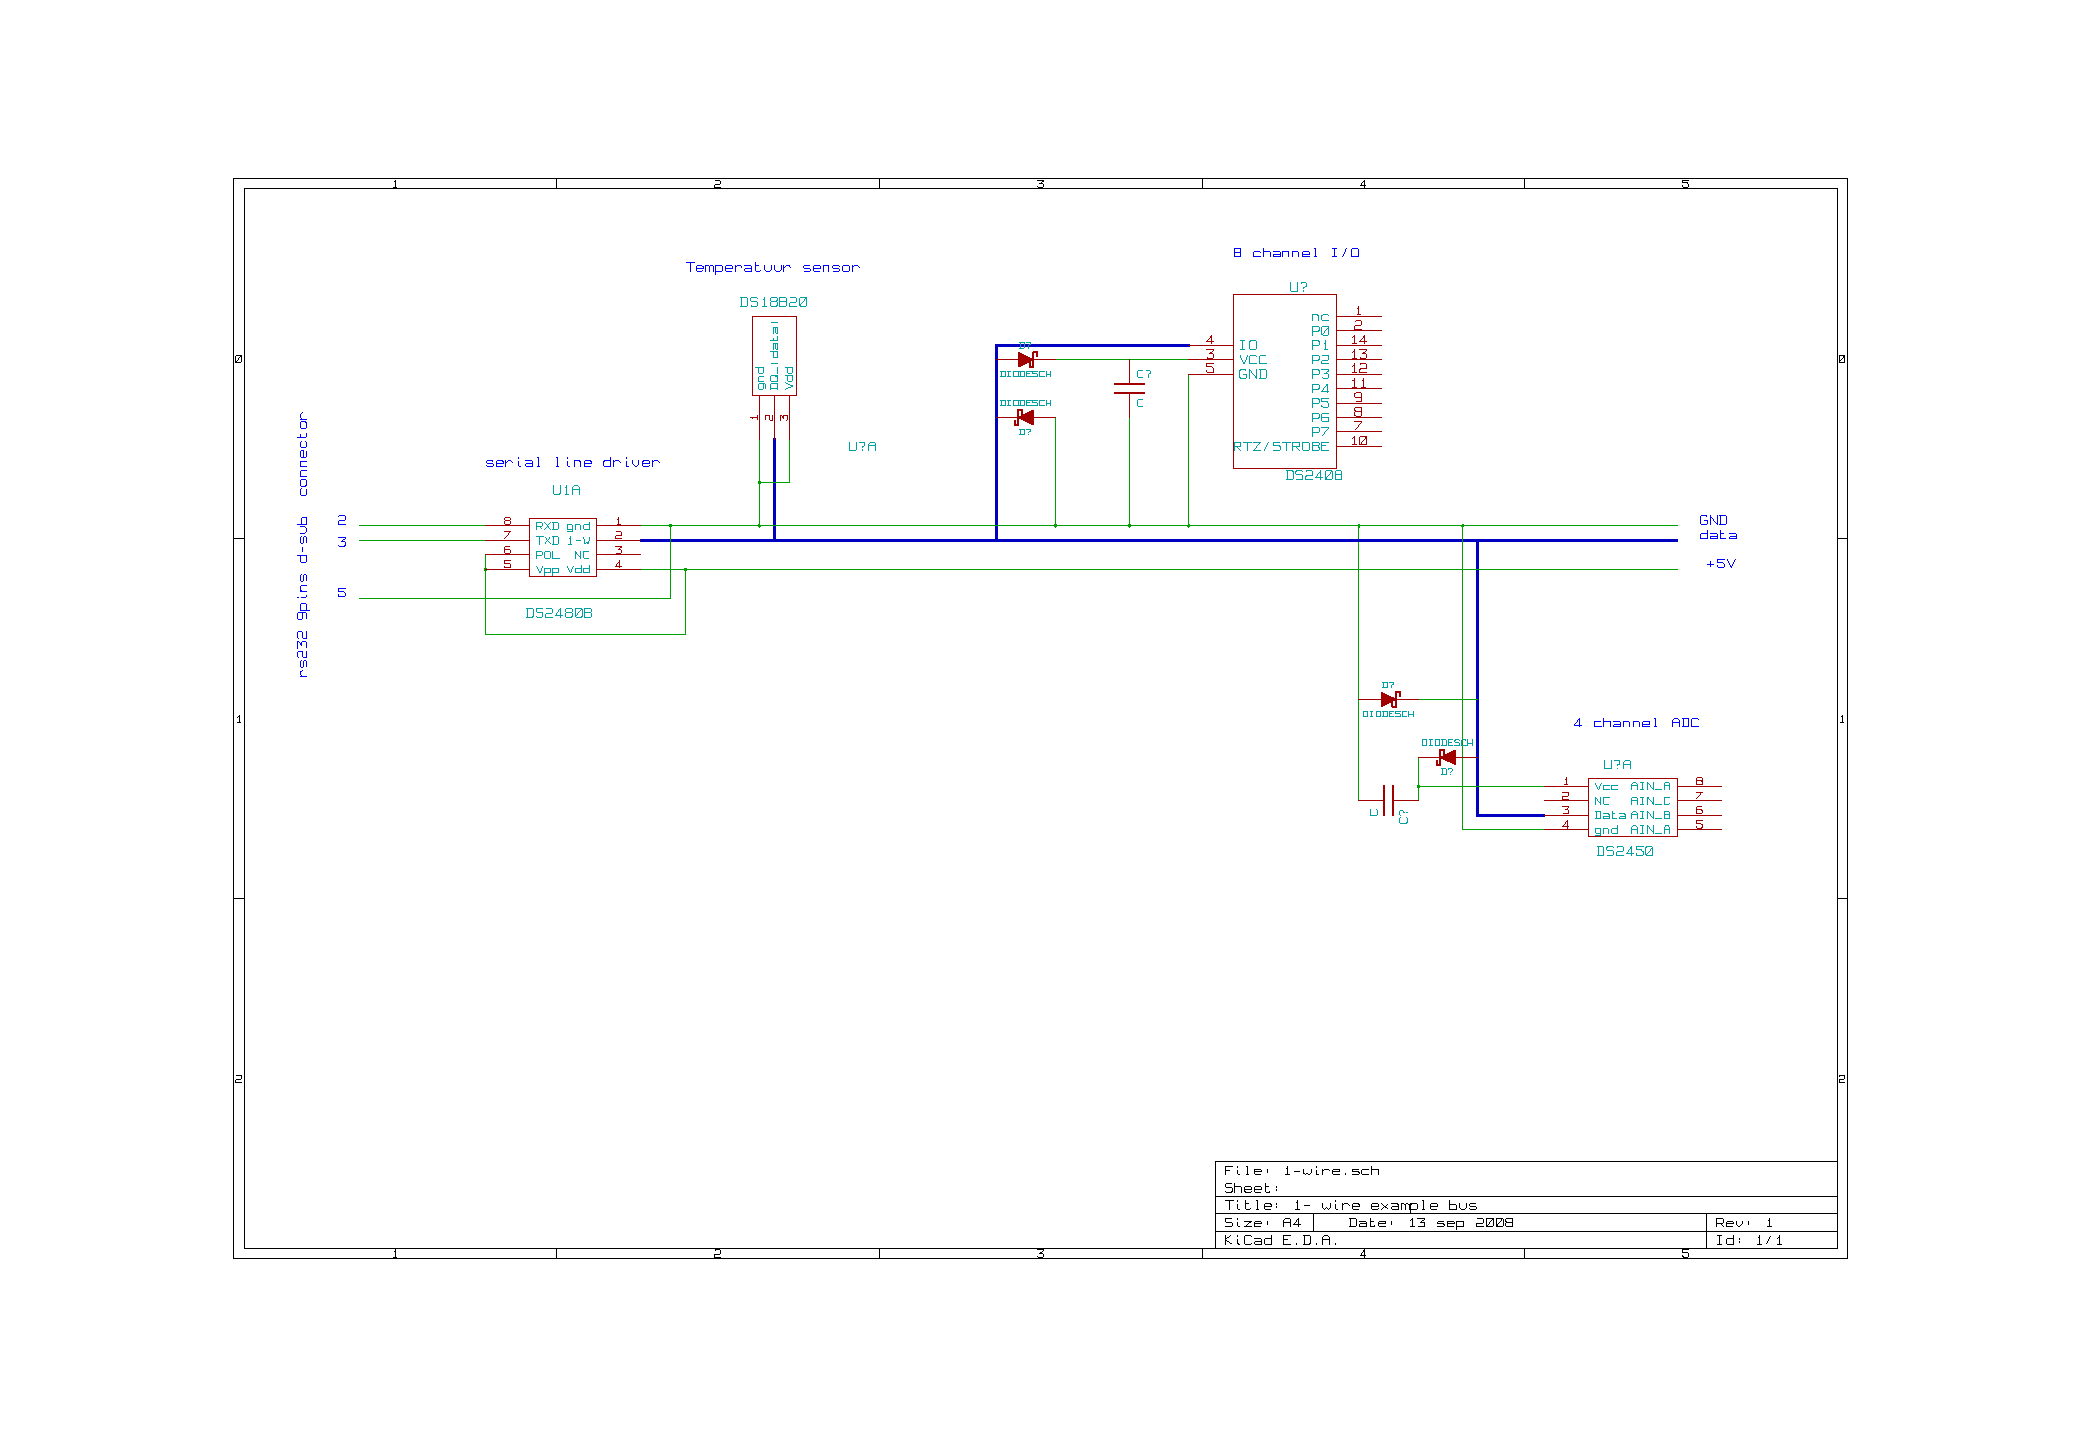 Ics Diagrams Wiring Diagram The I O And Adc Are Supplied Bus For Power Parasitic Mode 2080x1440